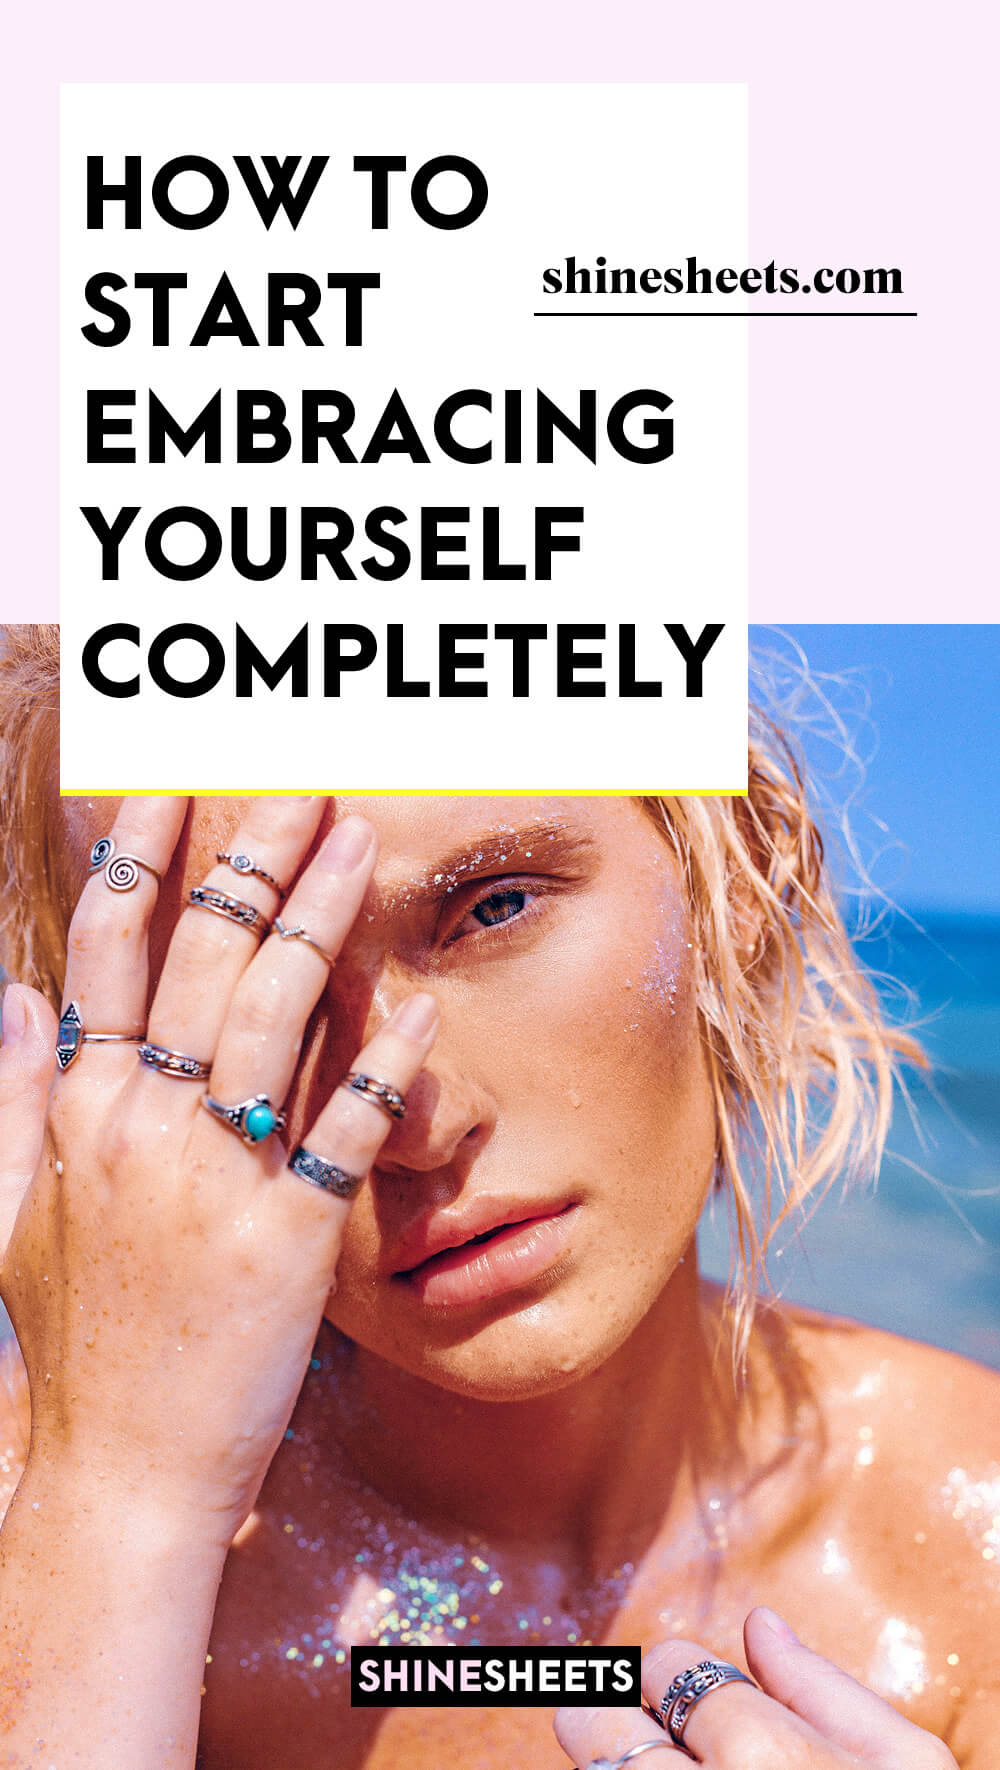 woman in art illustration of how to start embracing yourself